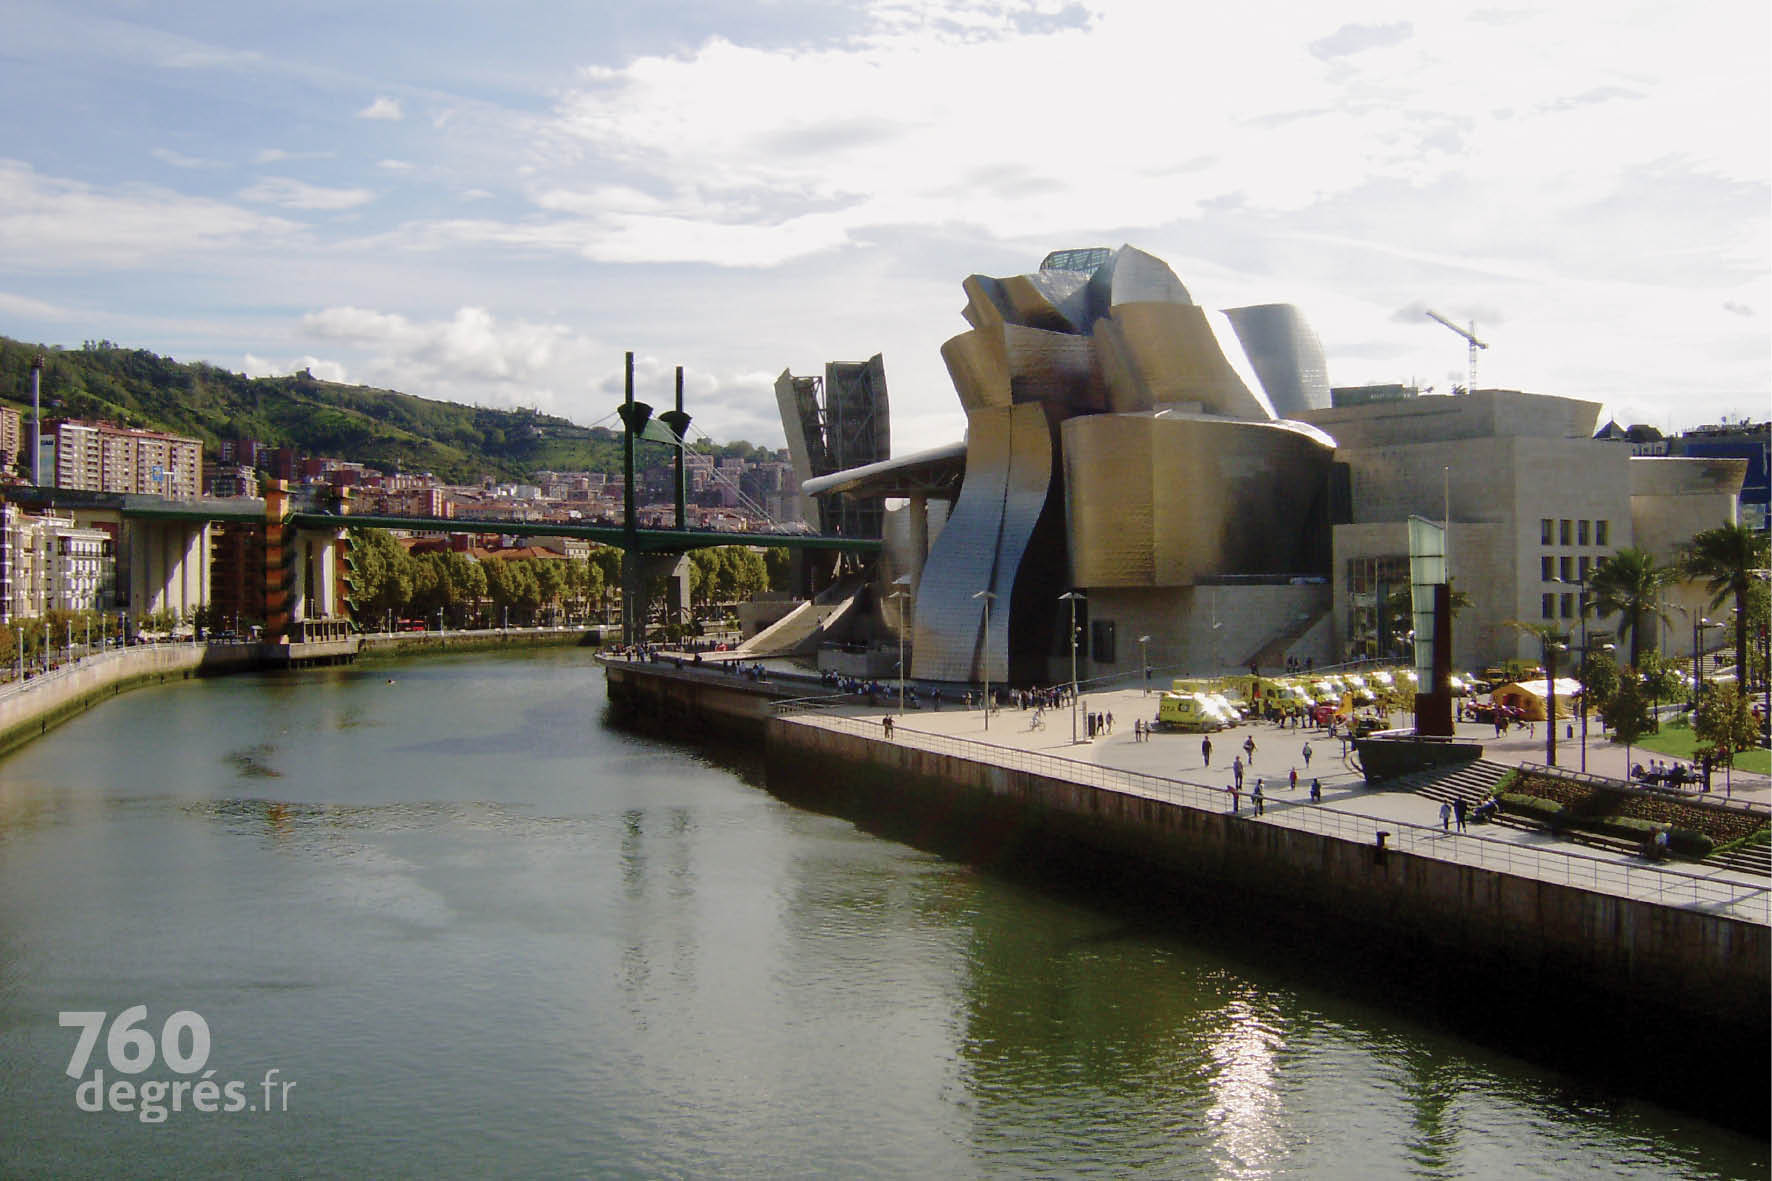 760degres-pays-basque-bilbao-03